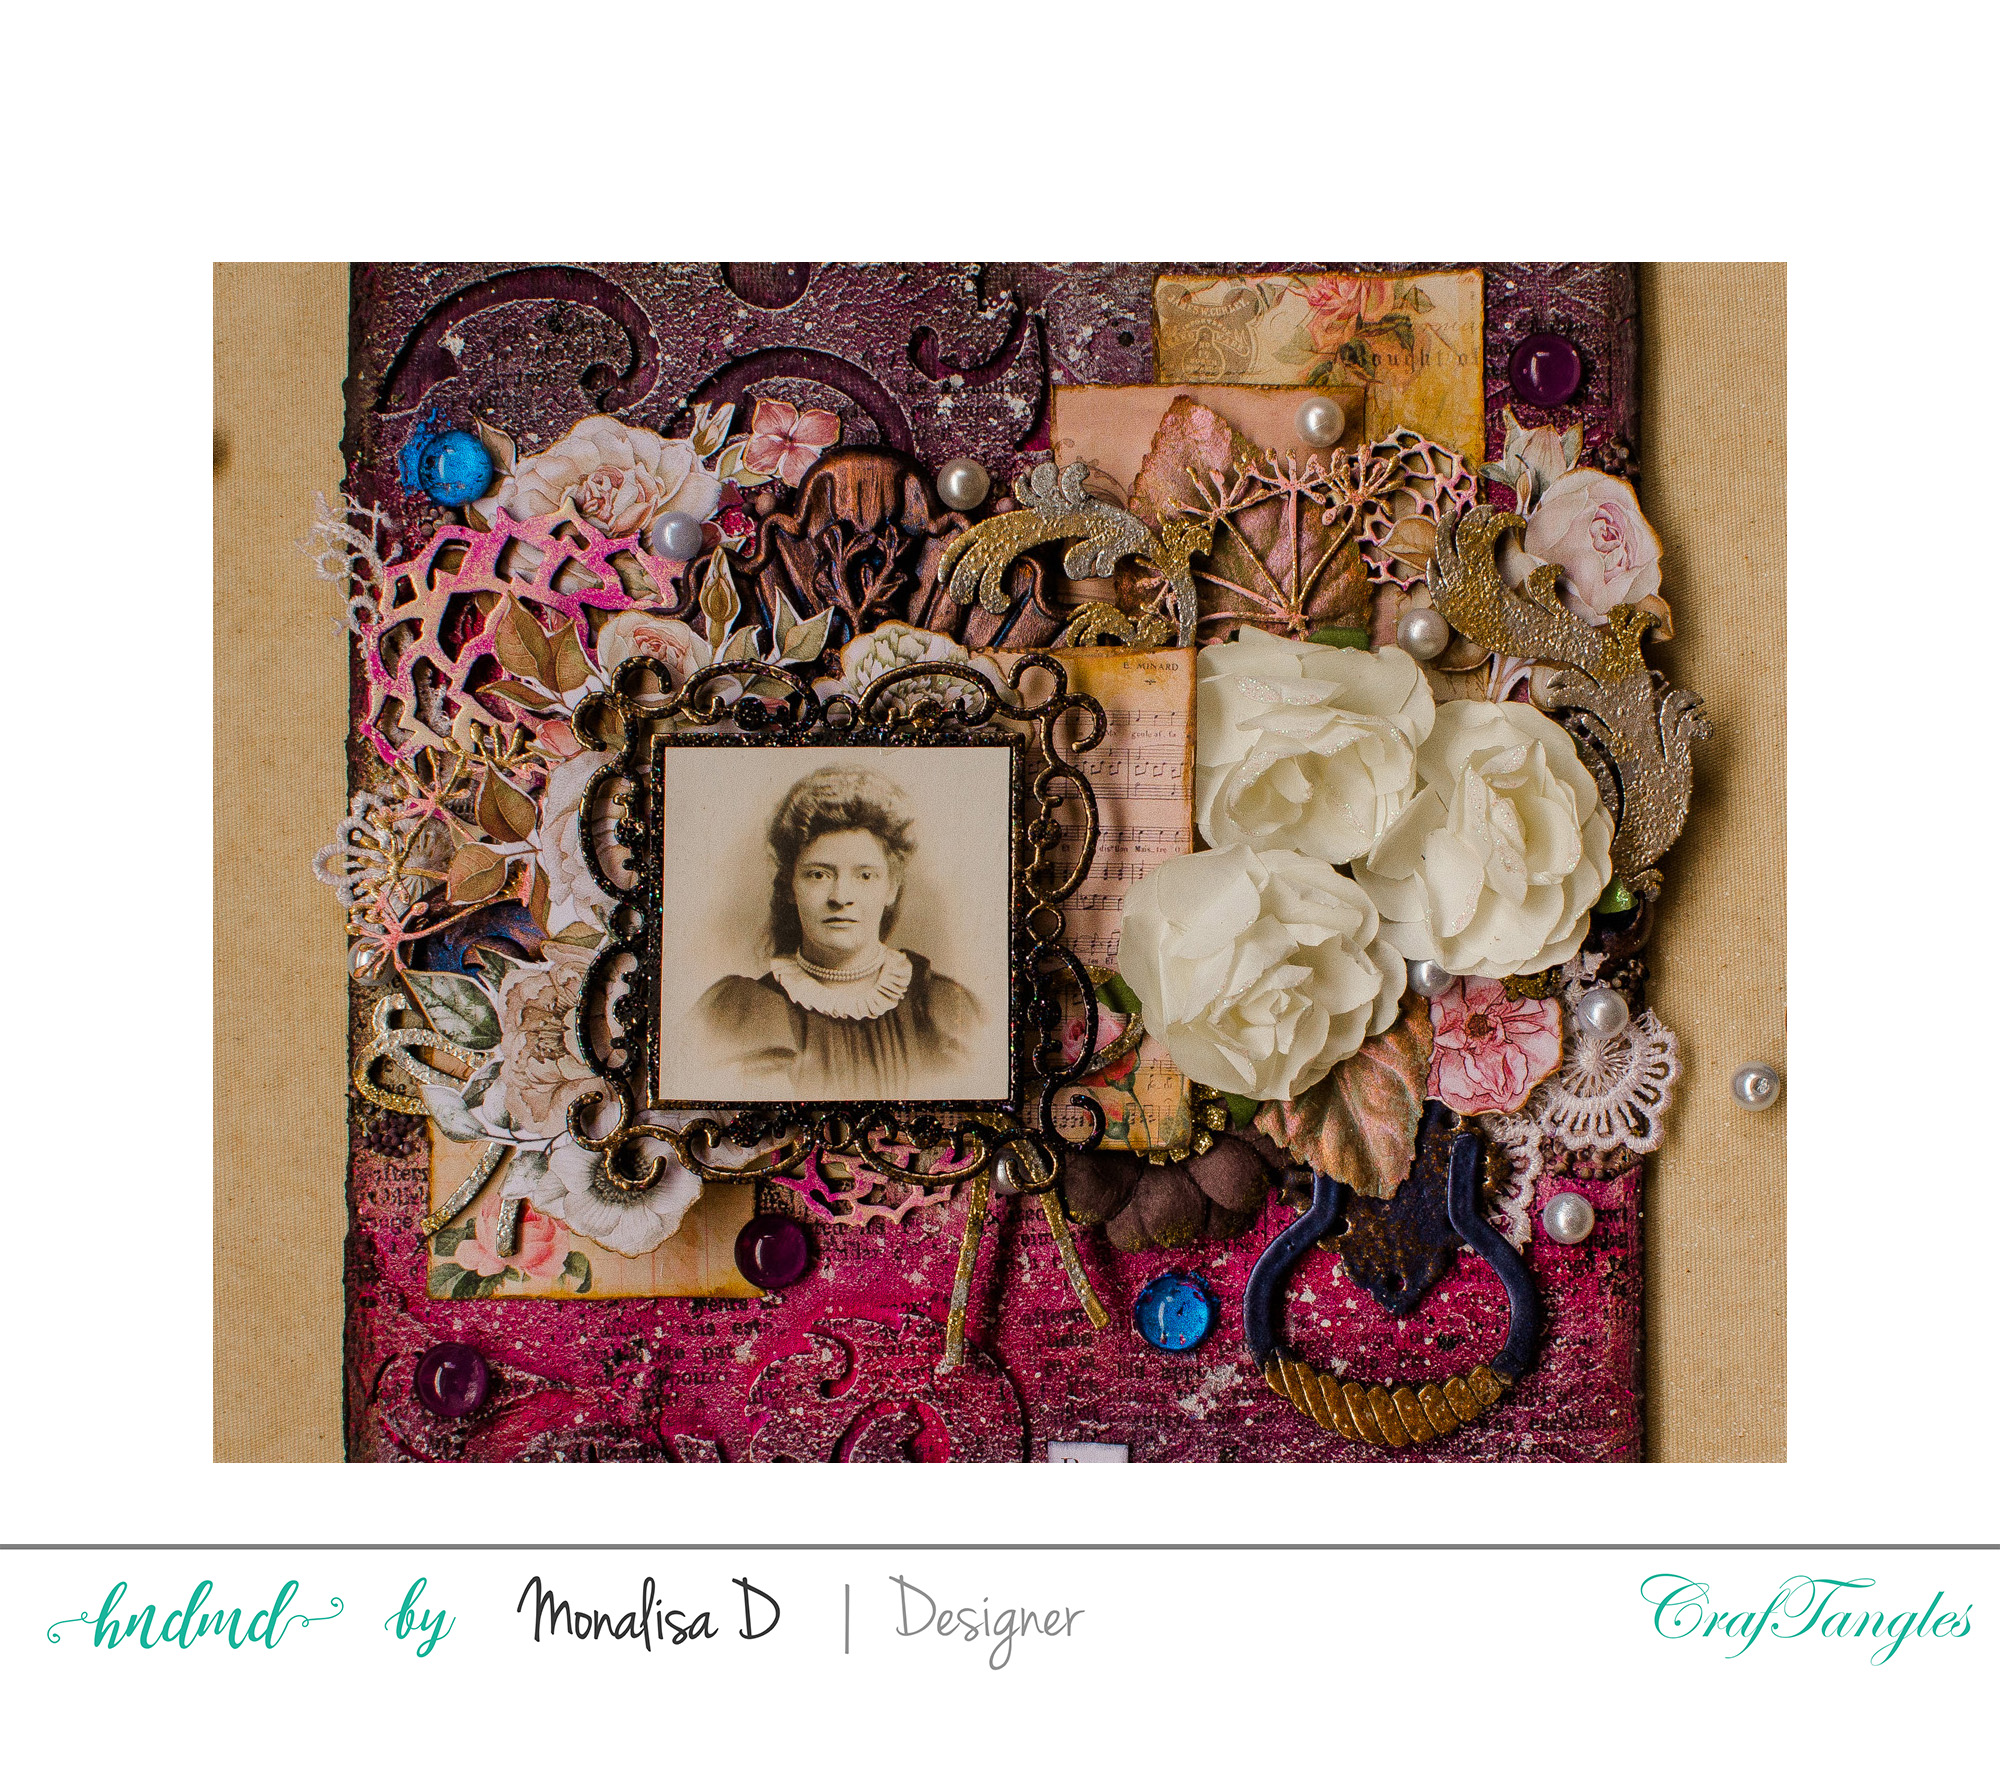 Indisputable Femininity - Mixed Media Layout 3